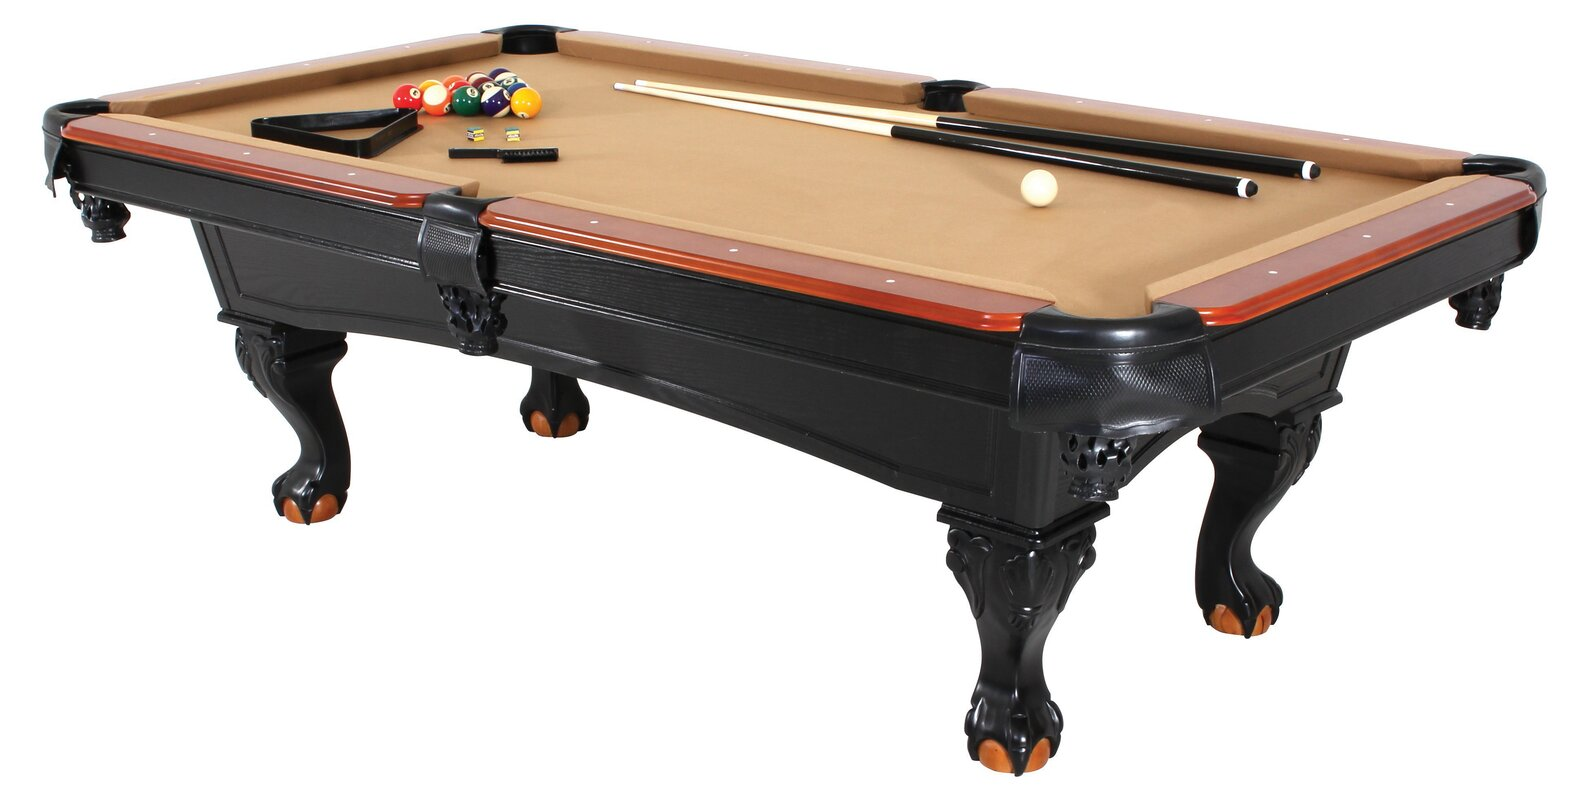 Pool table legs accessories for sale -  Pool Tables Sku Esca1094 Sale Default_name